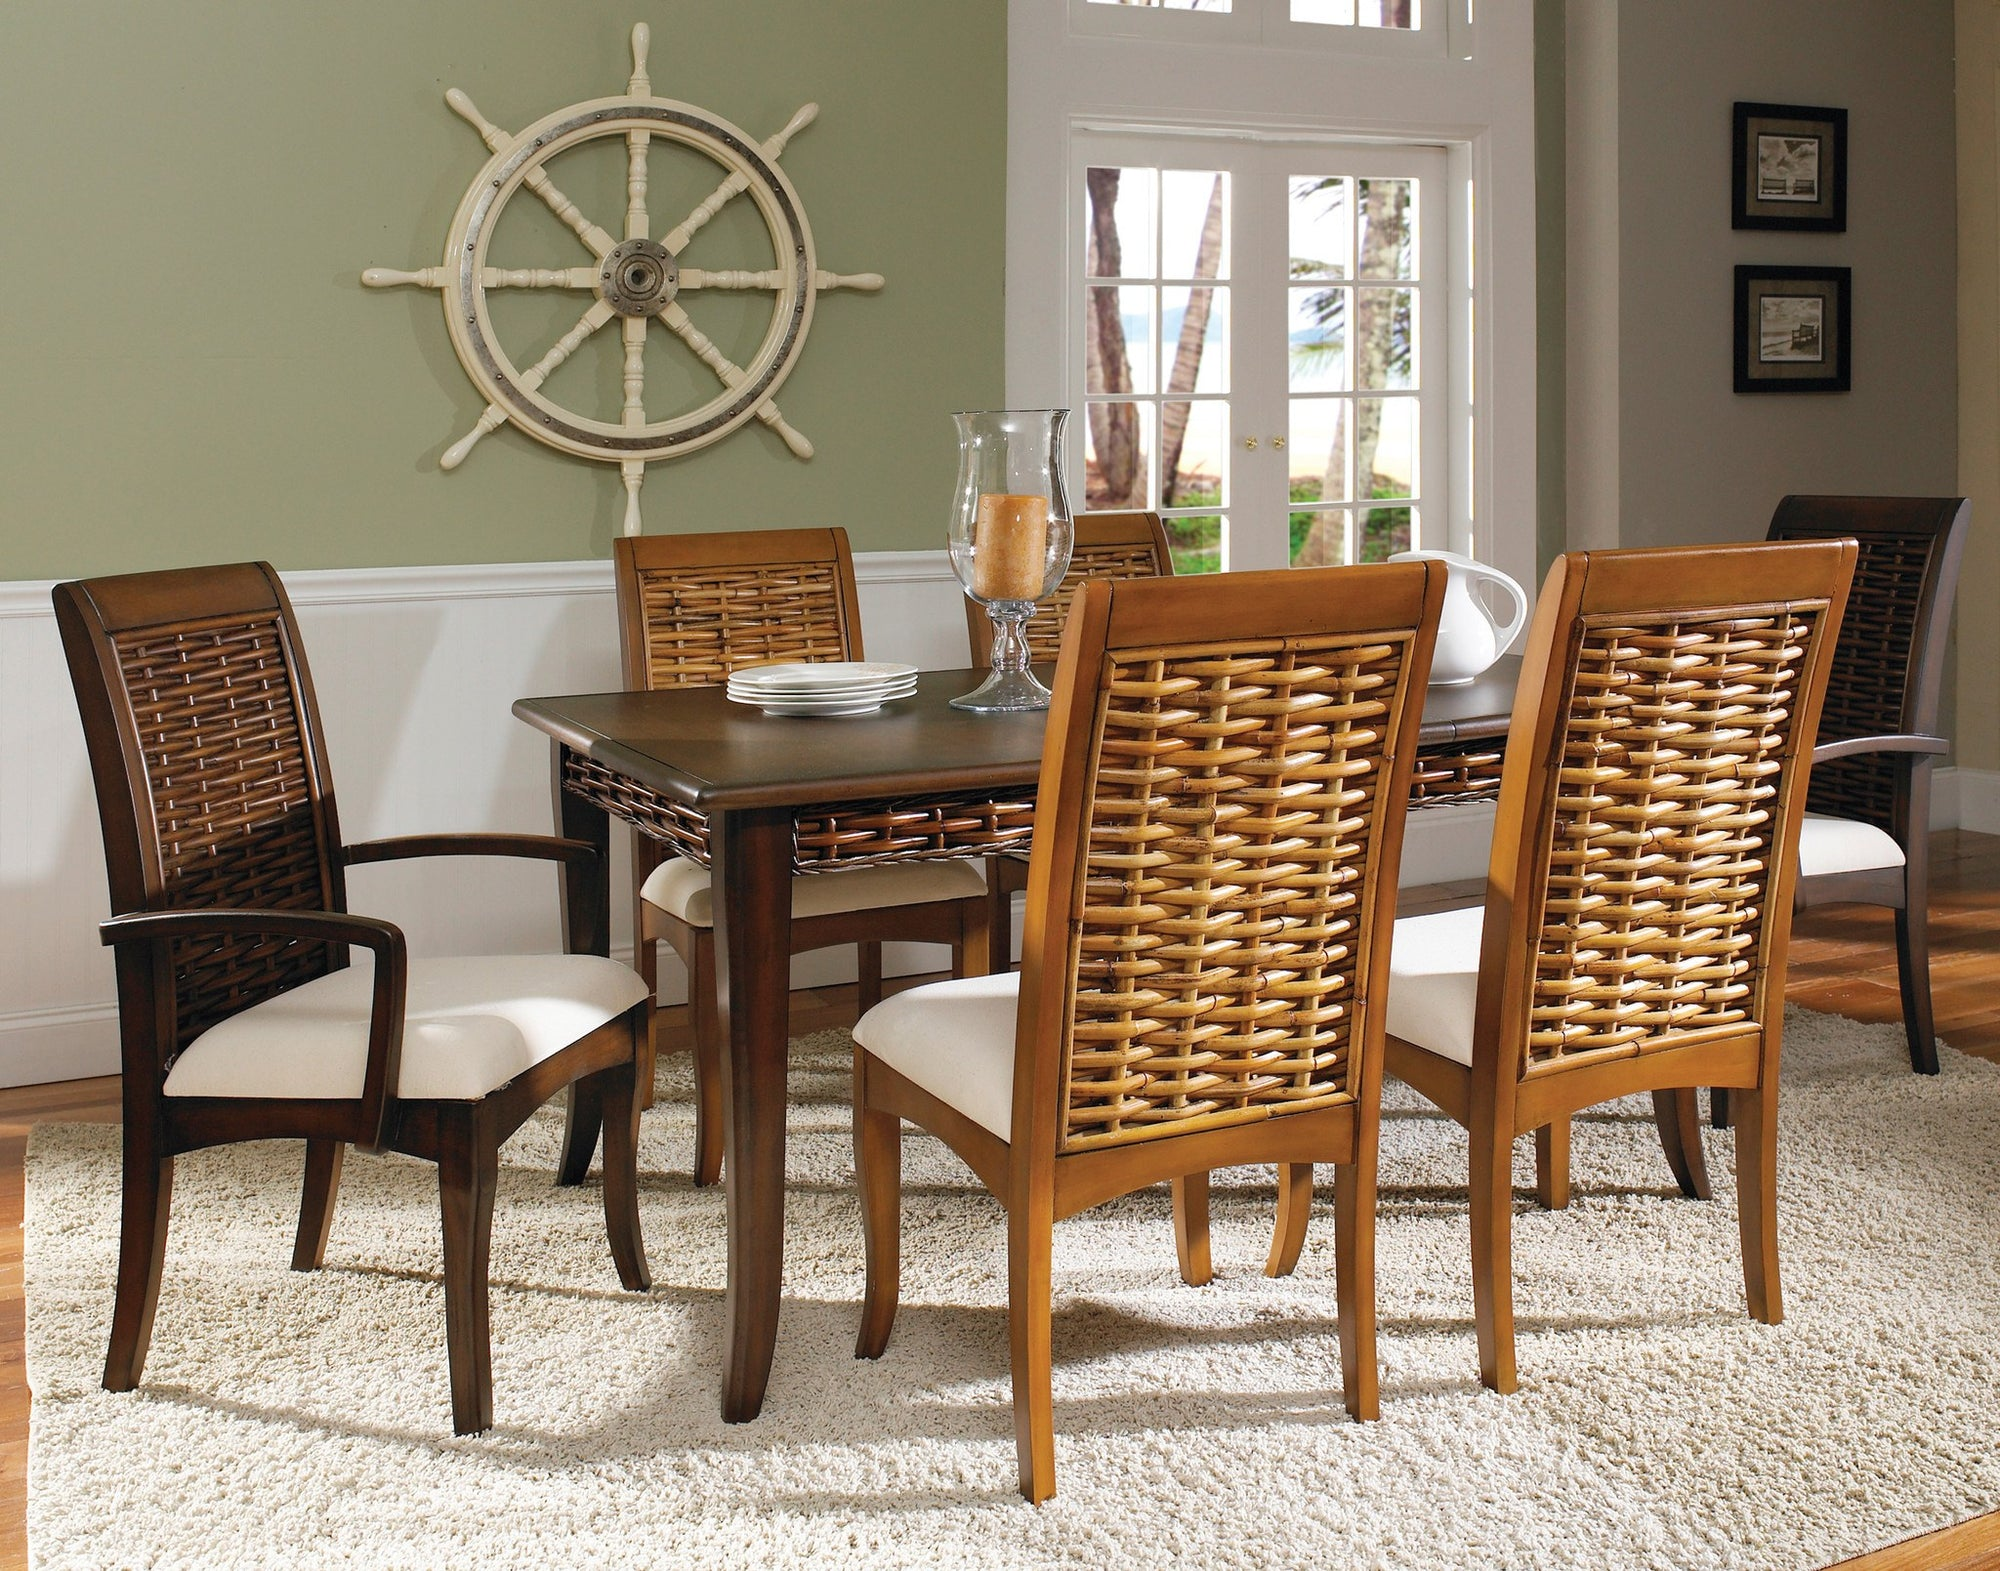 Designer Wicker & Rattan By Tribor Freeport Expandable Dining Table by Designer Wicker from Tribor Dining Table - Rattan Imports